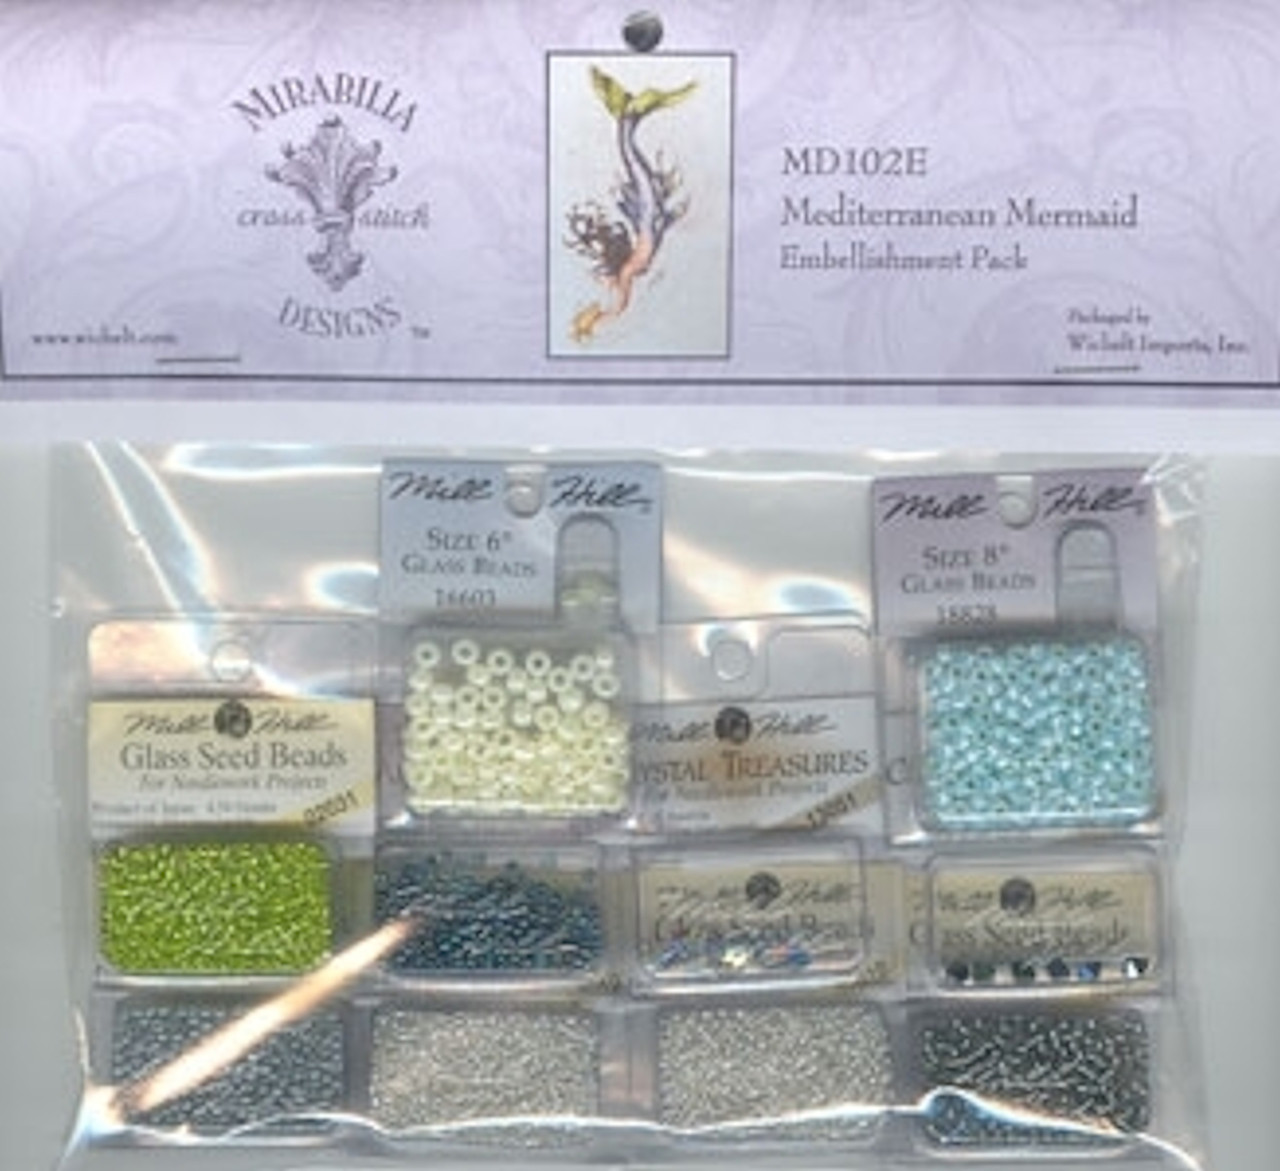 Mirabilia Embellishment Pack  - Mediterranean Mermaid